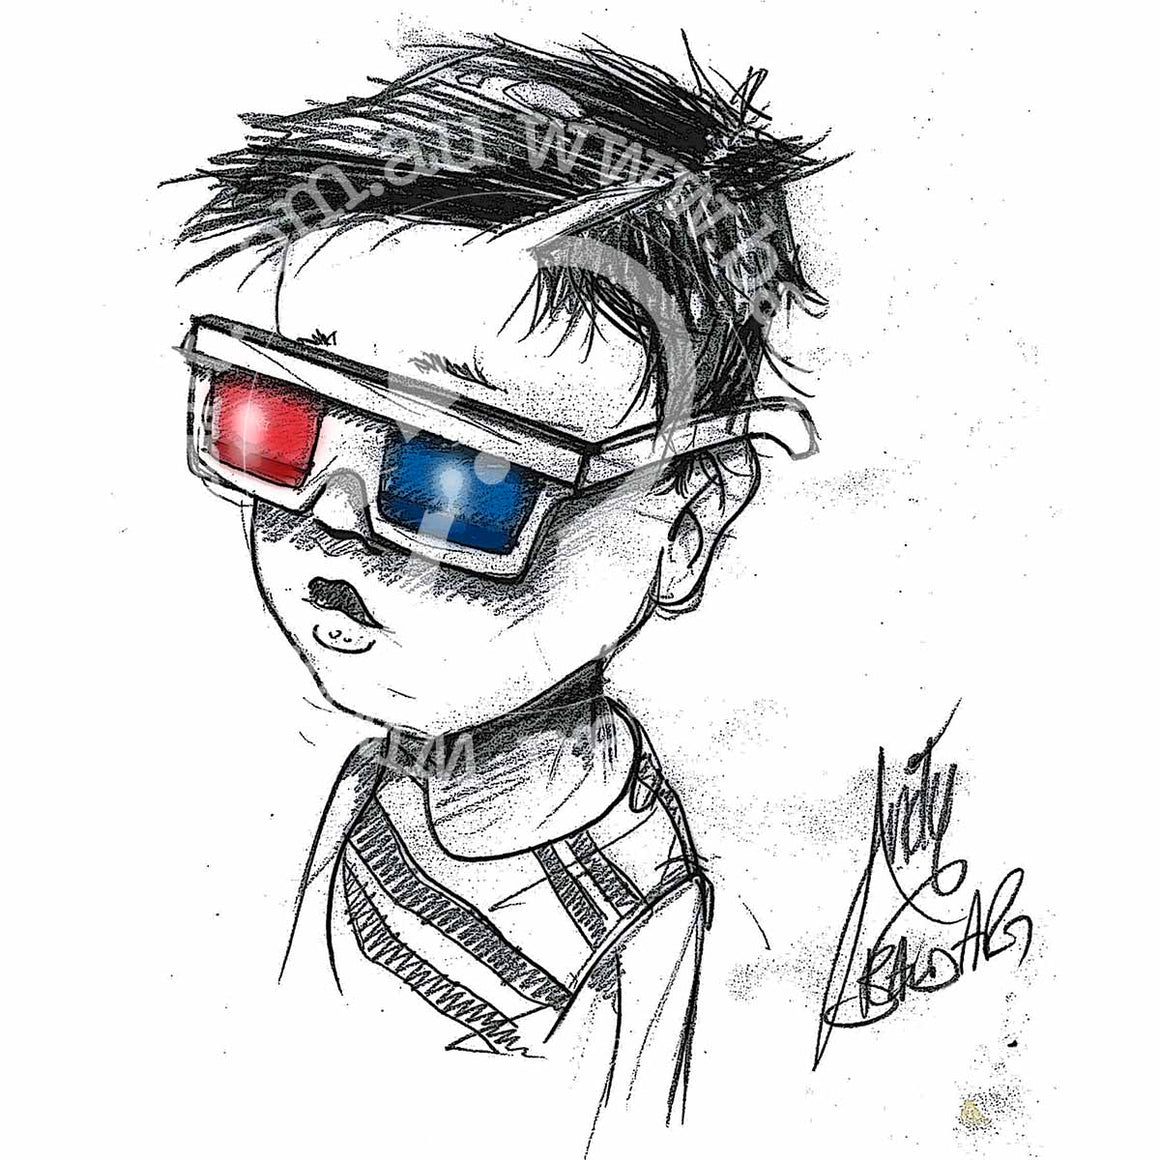 sketch style artwork dan in his 3D glasses by andy baker of bald art